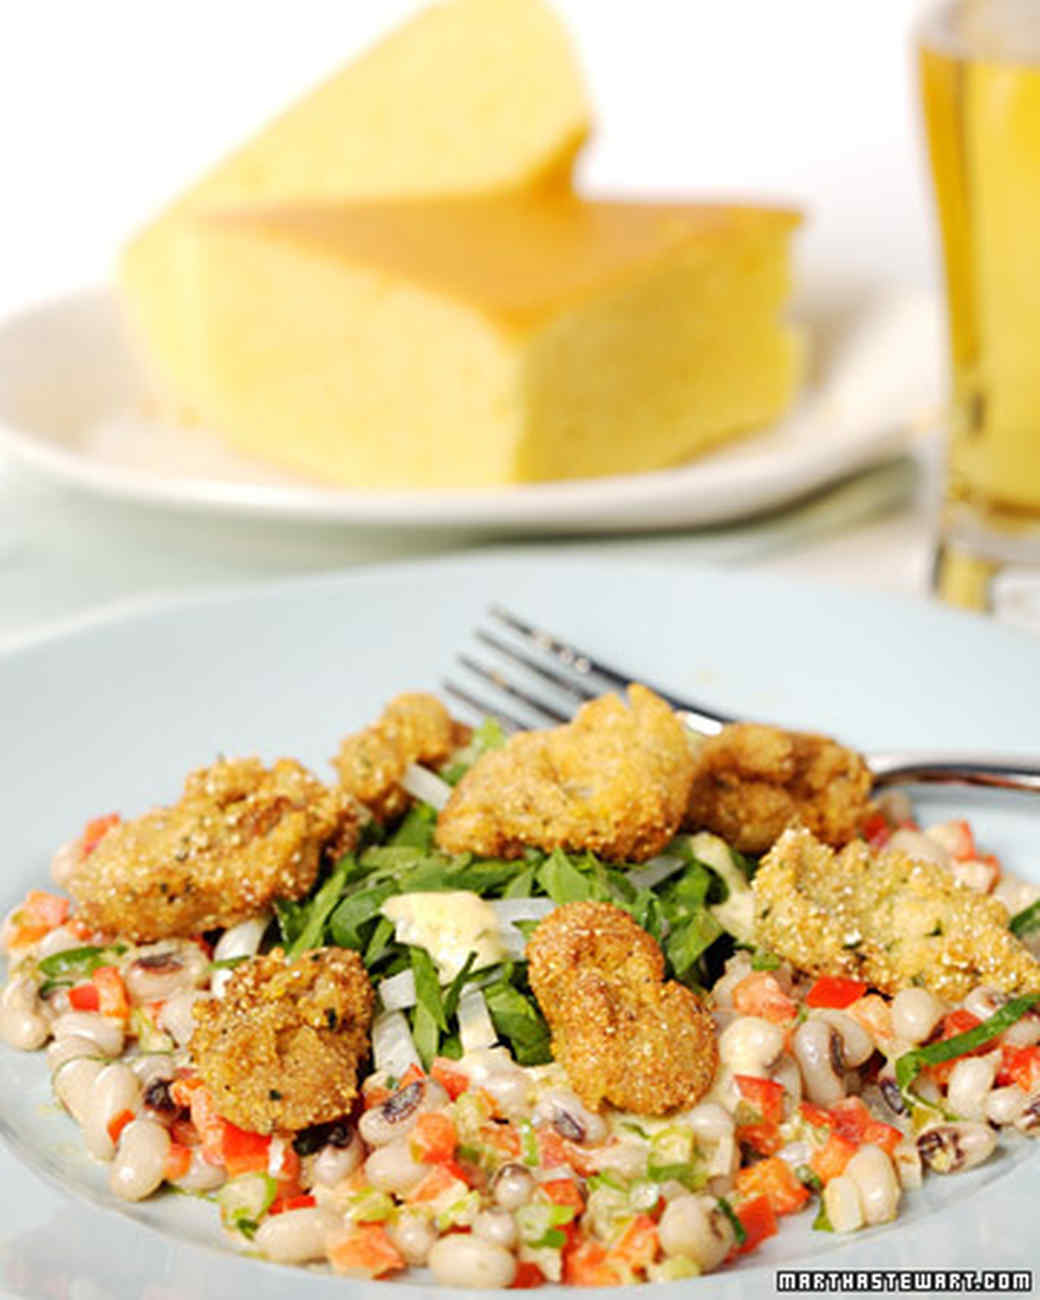 Cornmeal-Crusted Oyster and Black-Eyed Pea Salad with Jalapeno Dressing